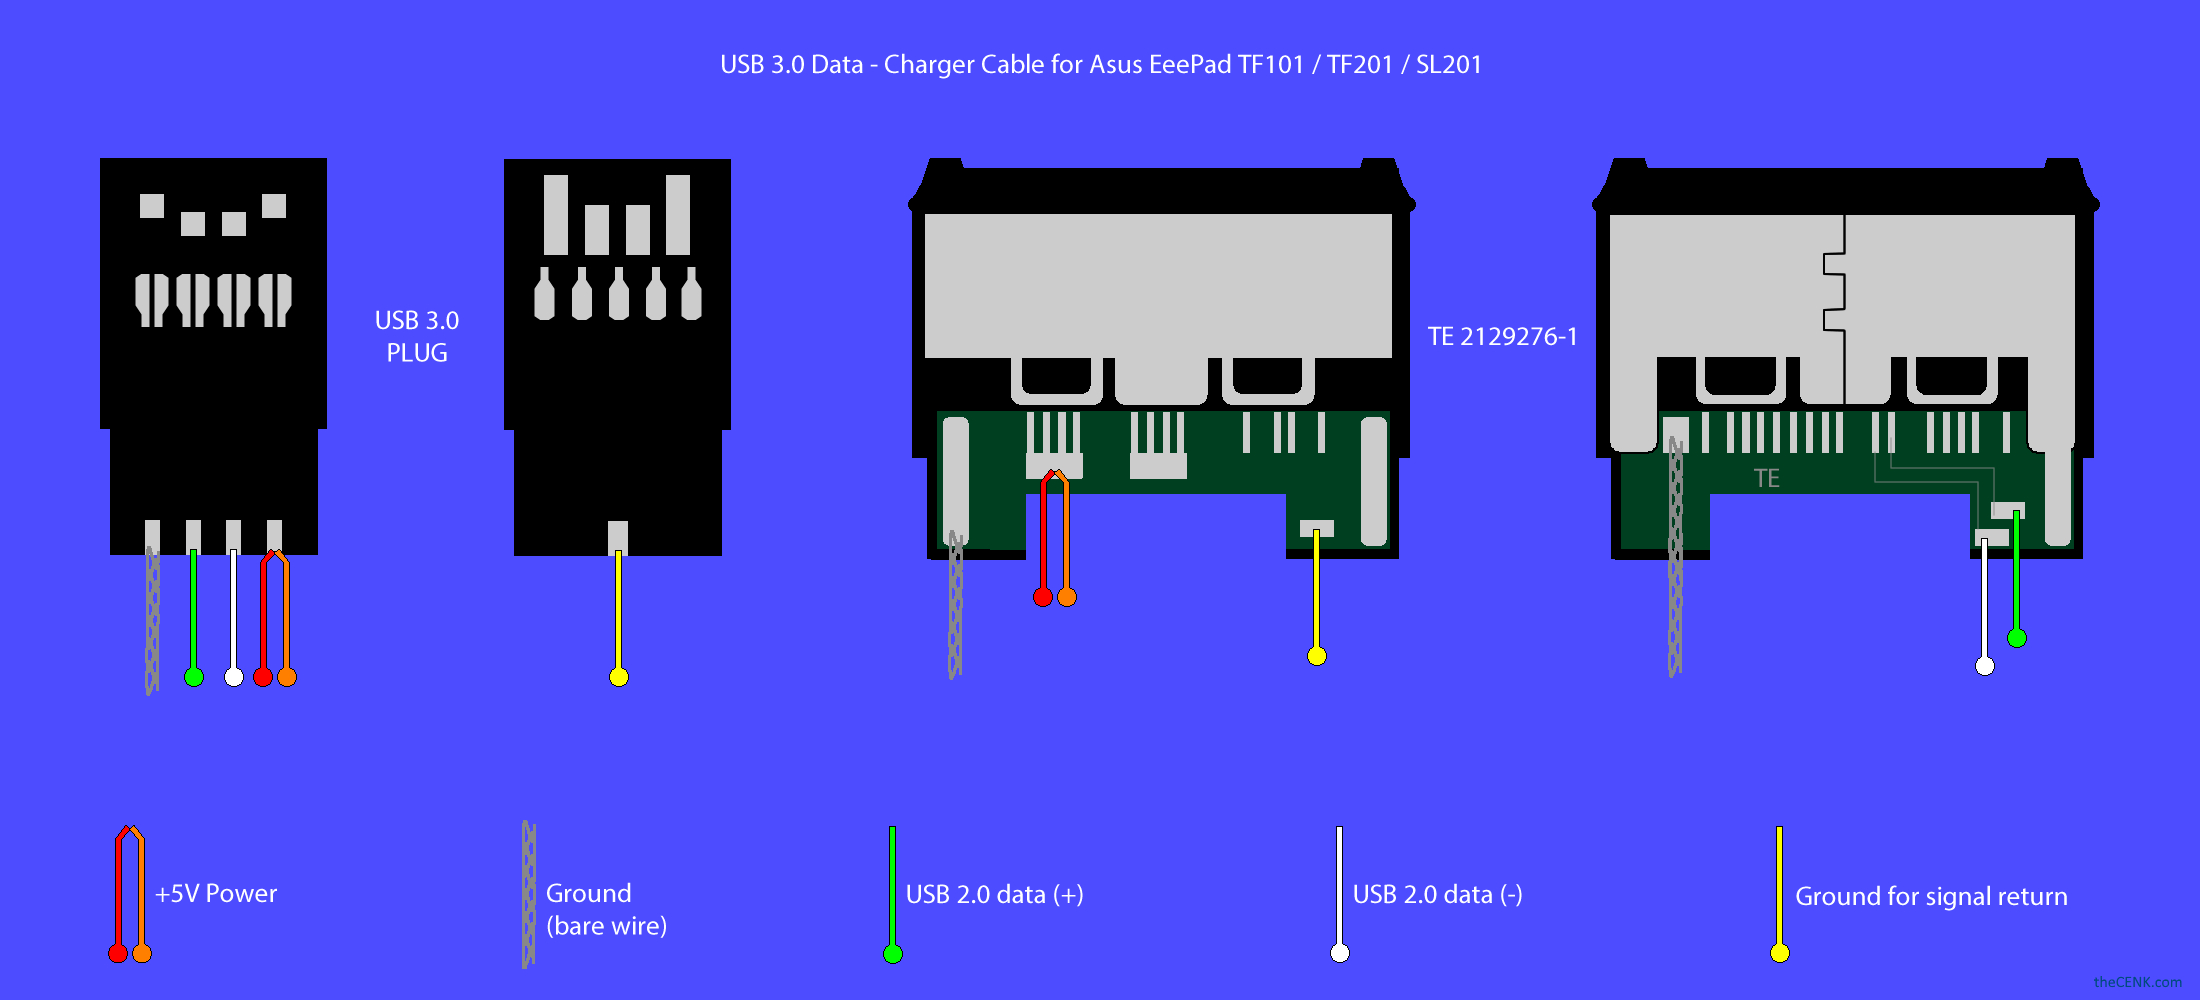 Usb 3.0 Data – Charger Cable For Asus Eeepad Tf101 / Tf201 / Sl201 - Wiring Diagram Usb 3 Cable